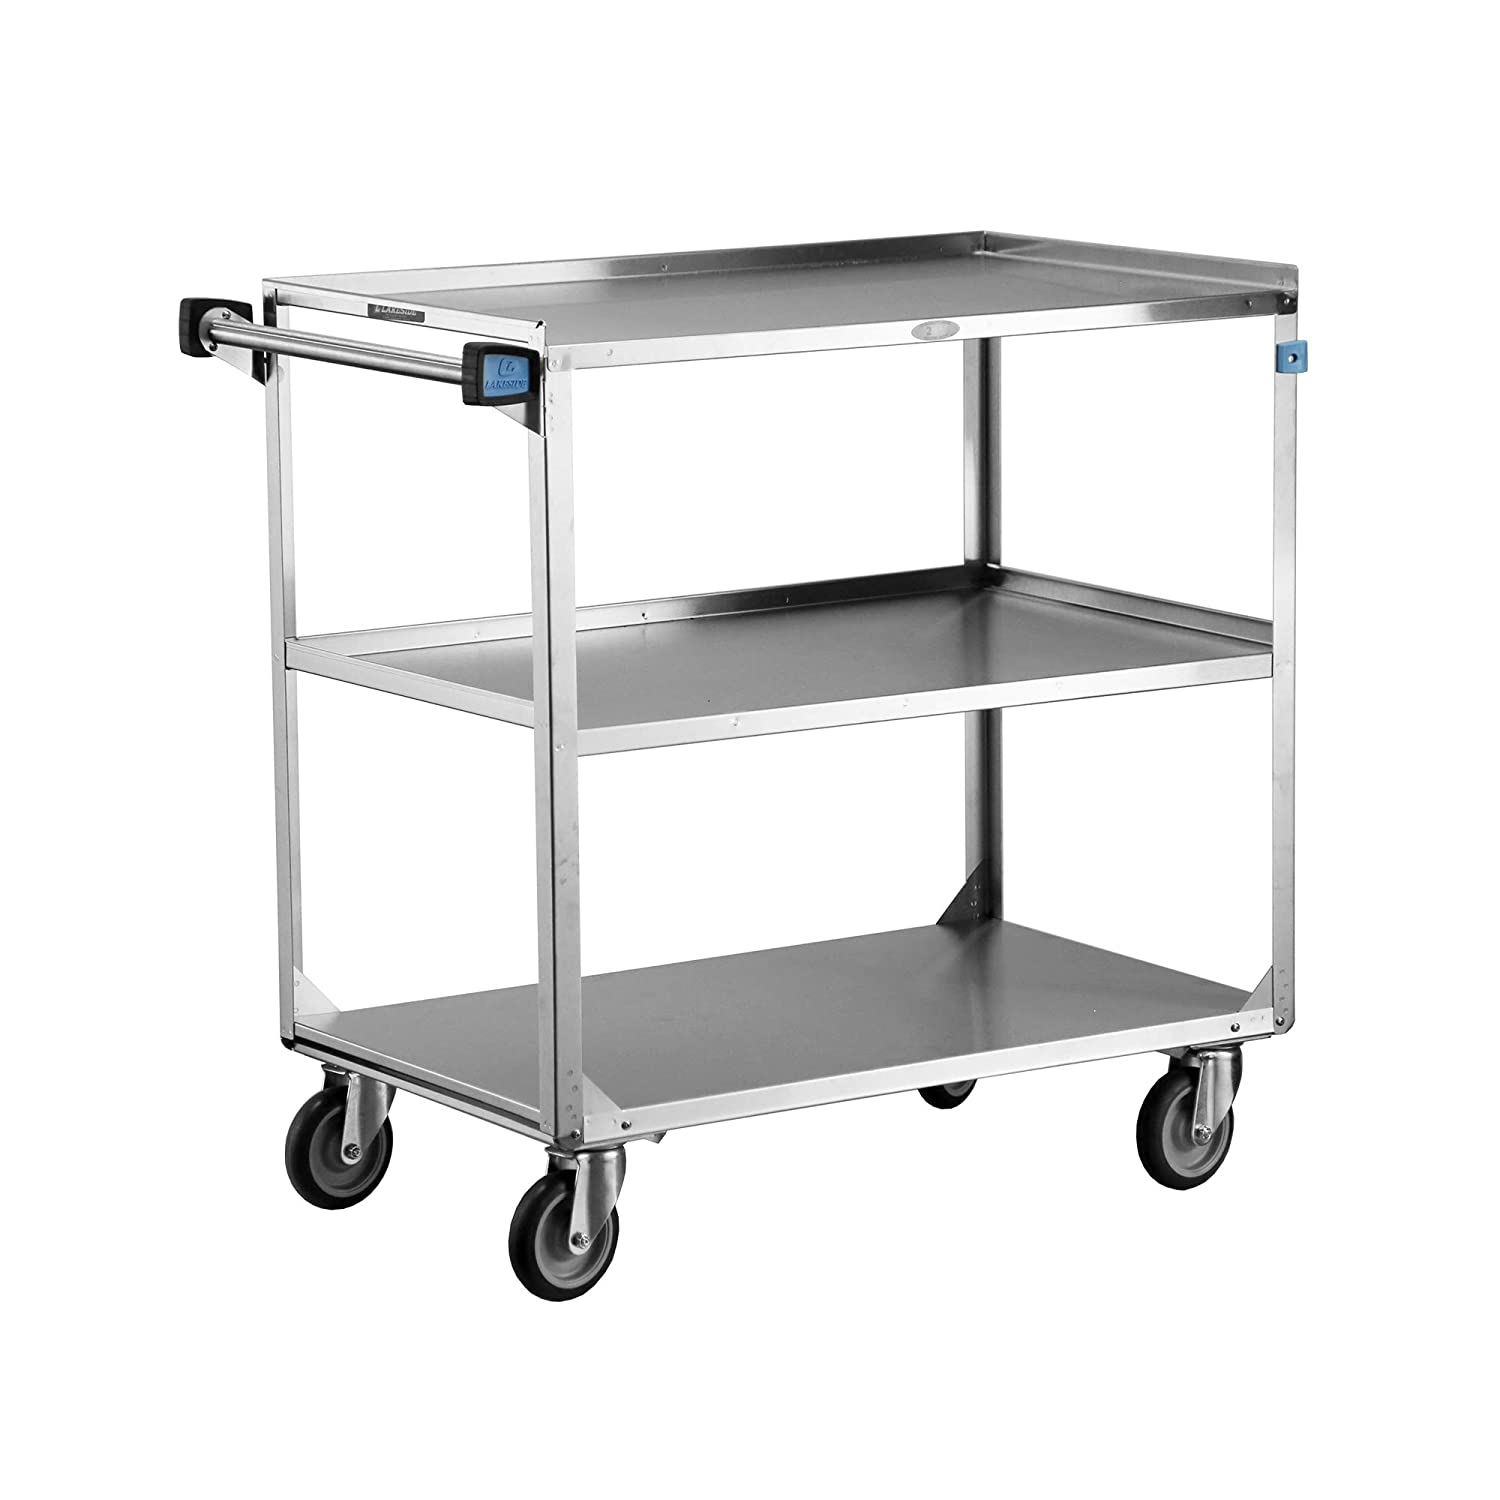 Lakeside 444 Utility Cart Stainless Steel 3 Shelves 500 Lb Capacity Fully Assembled Industrial Scientific